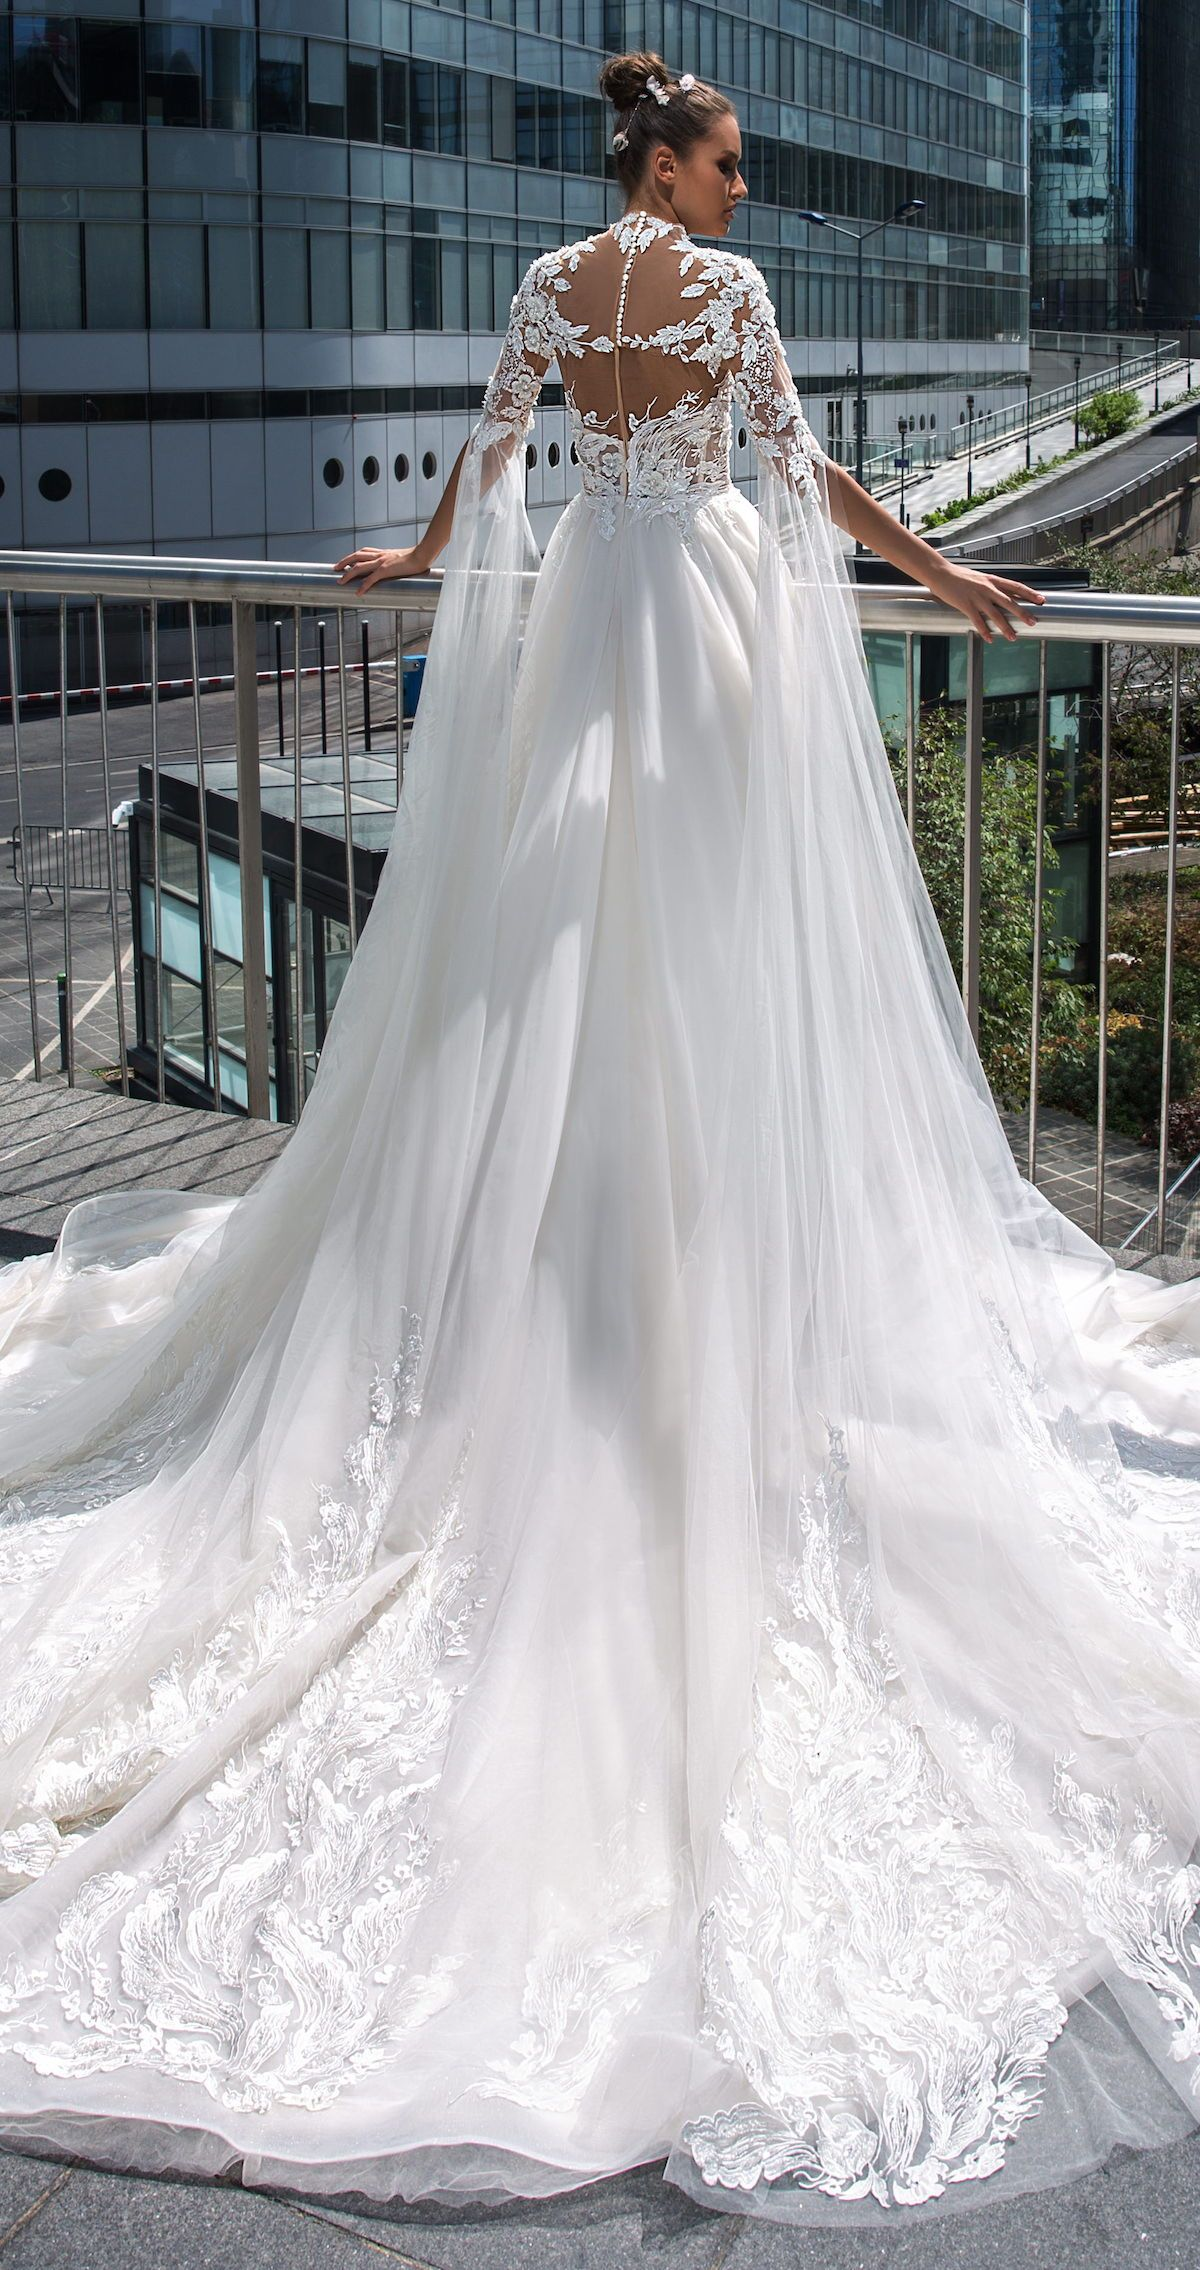 0d29f4dfc63 Ball gown wedding dress by Crystal Design MARCEL. Princess regal romantic  Bridal gown with lace back sleeves and long train  weddingdress   weddingdresses ...